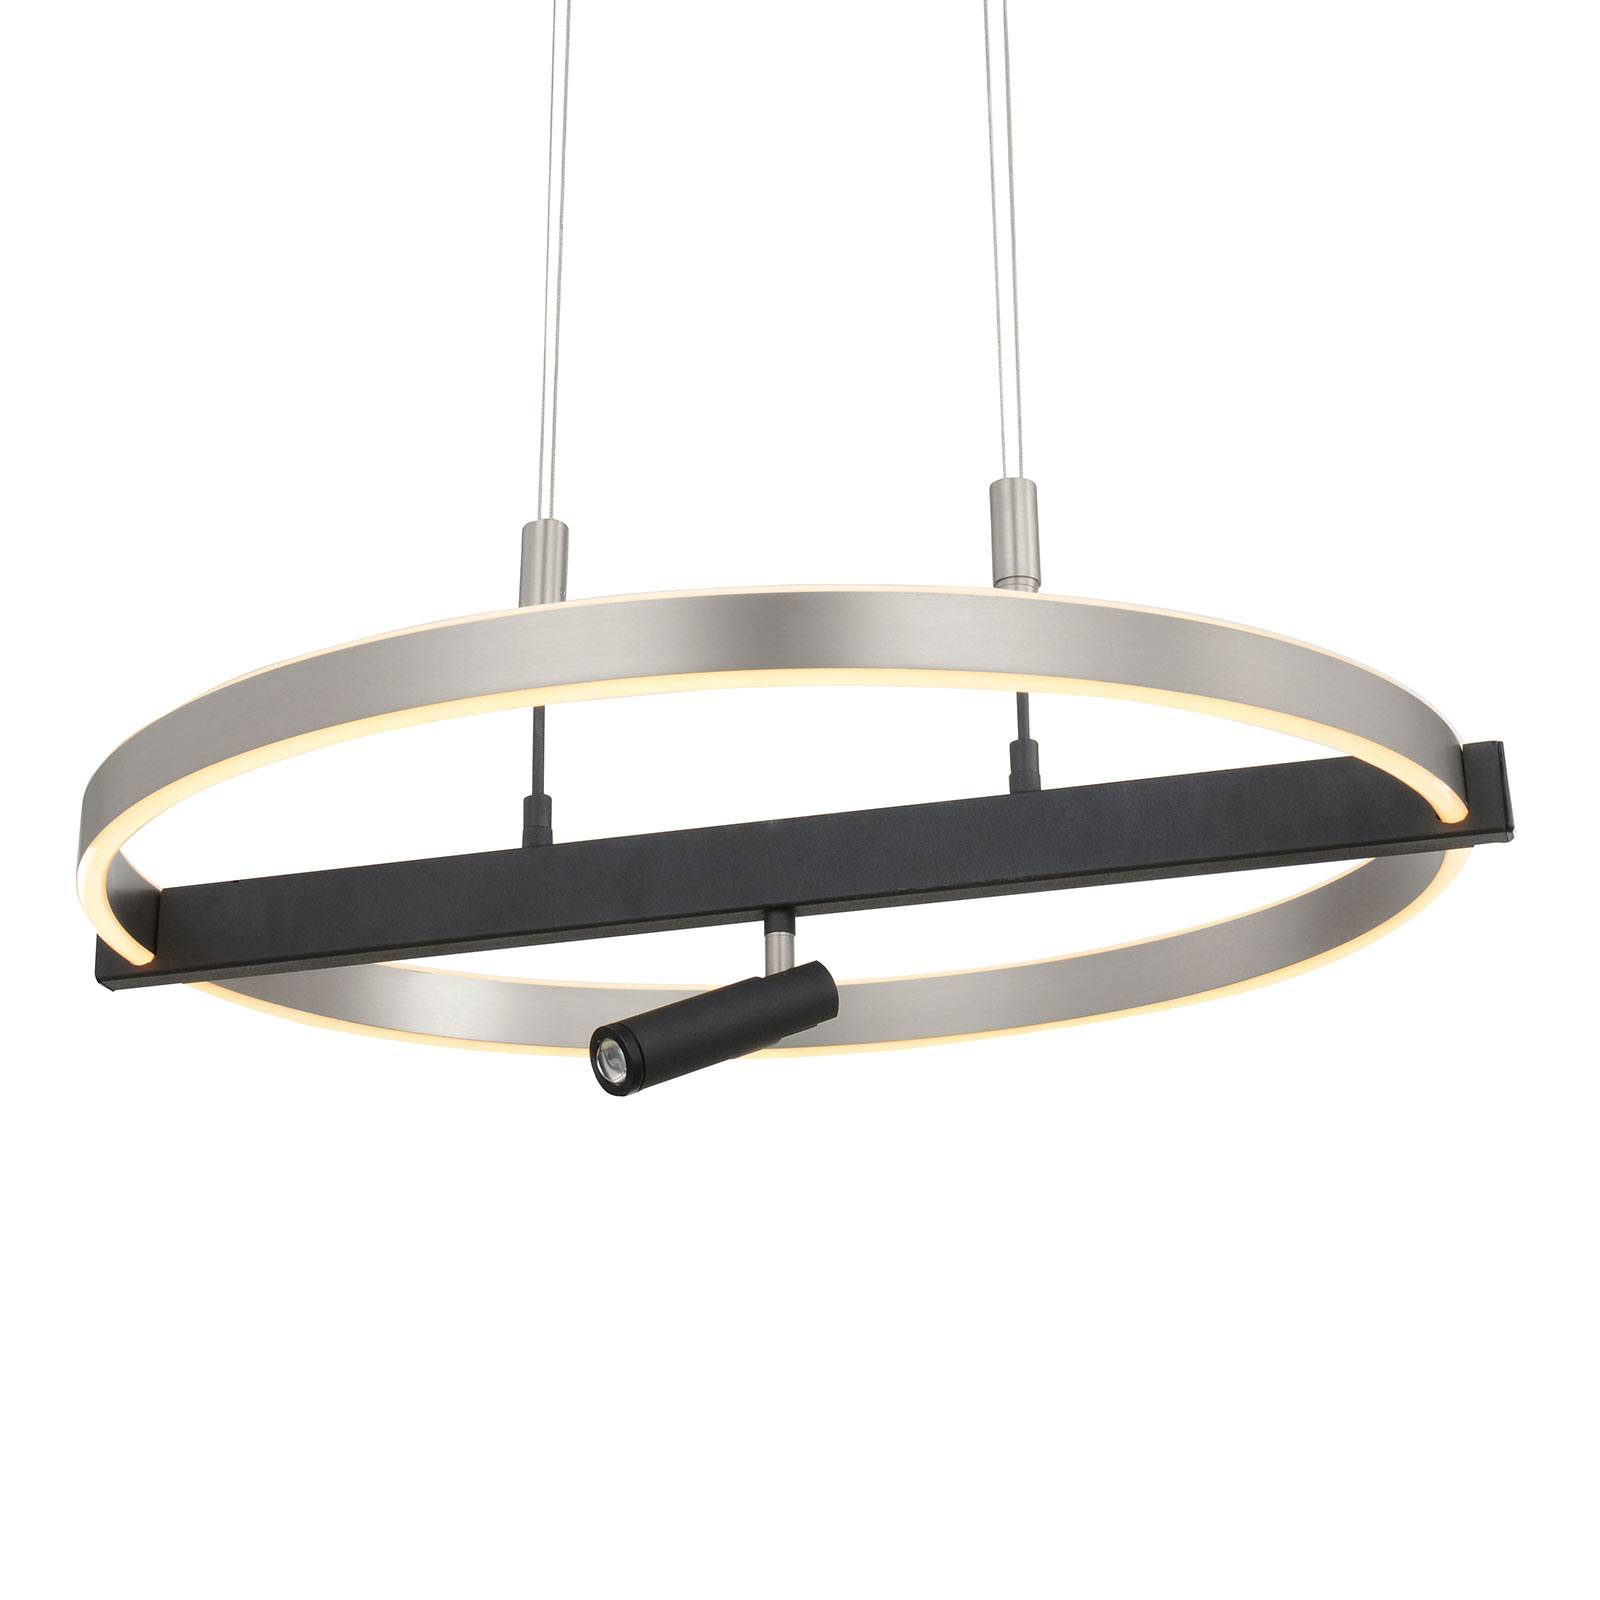 Lucande Matwei suspension LED, anneau, nickel